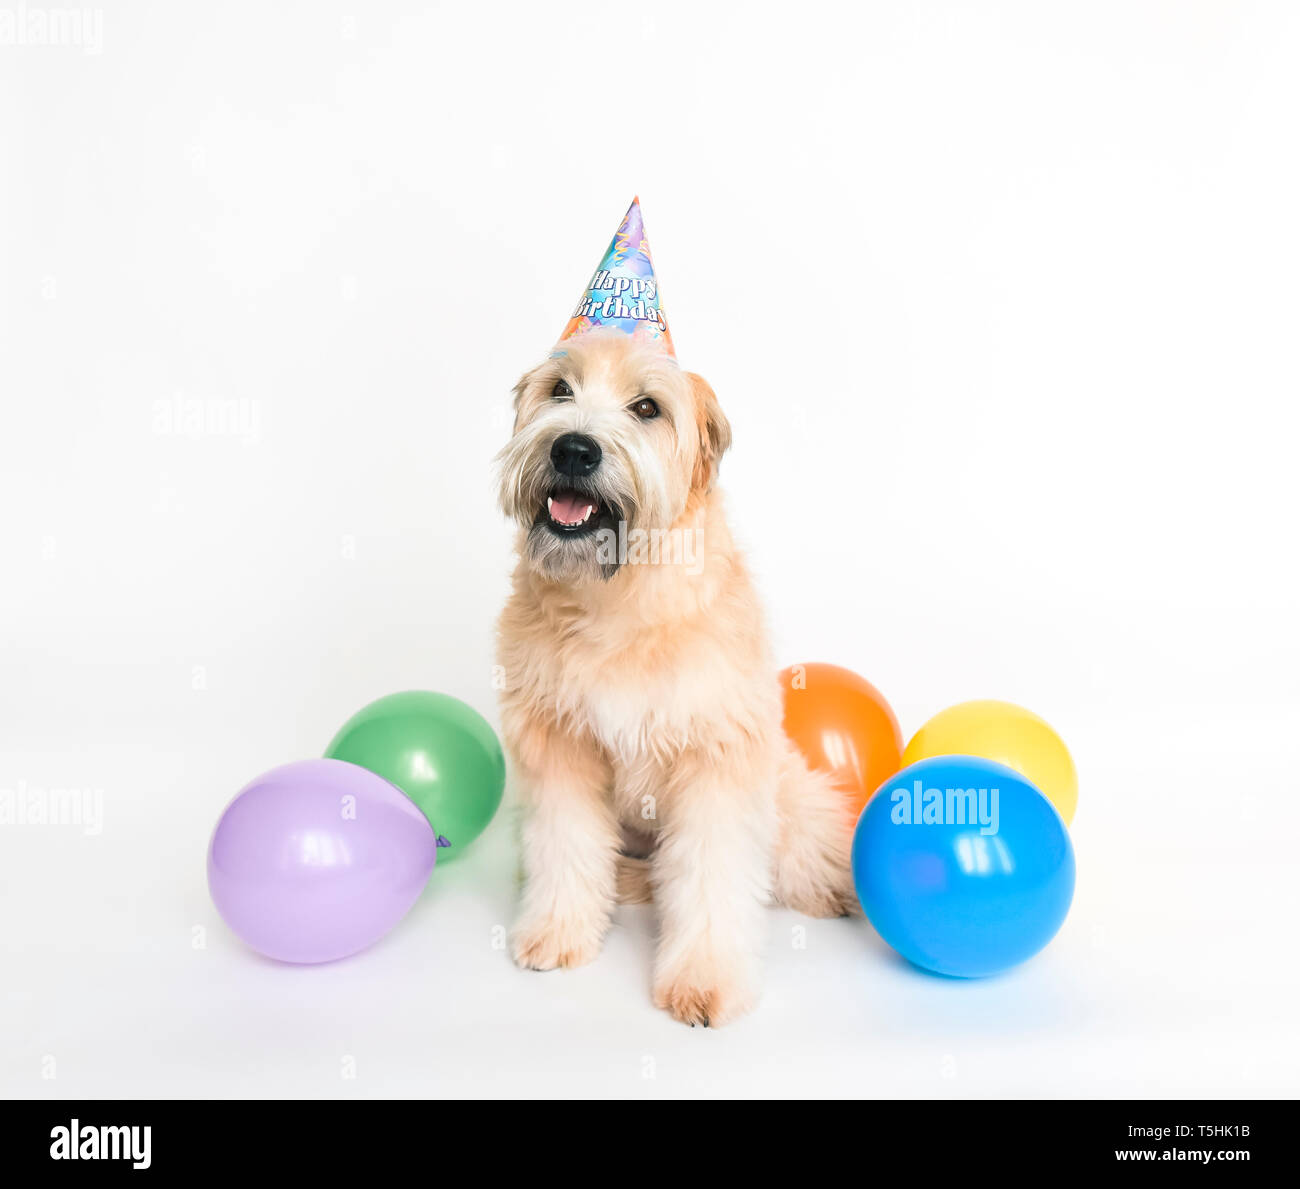 Fluffy Dog Wearing Birthday Hat With Balloons On White Background